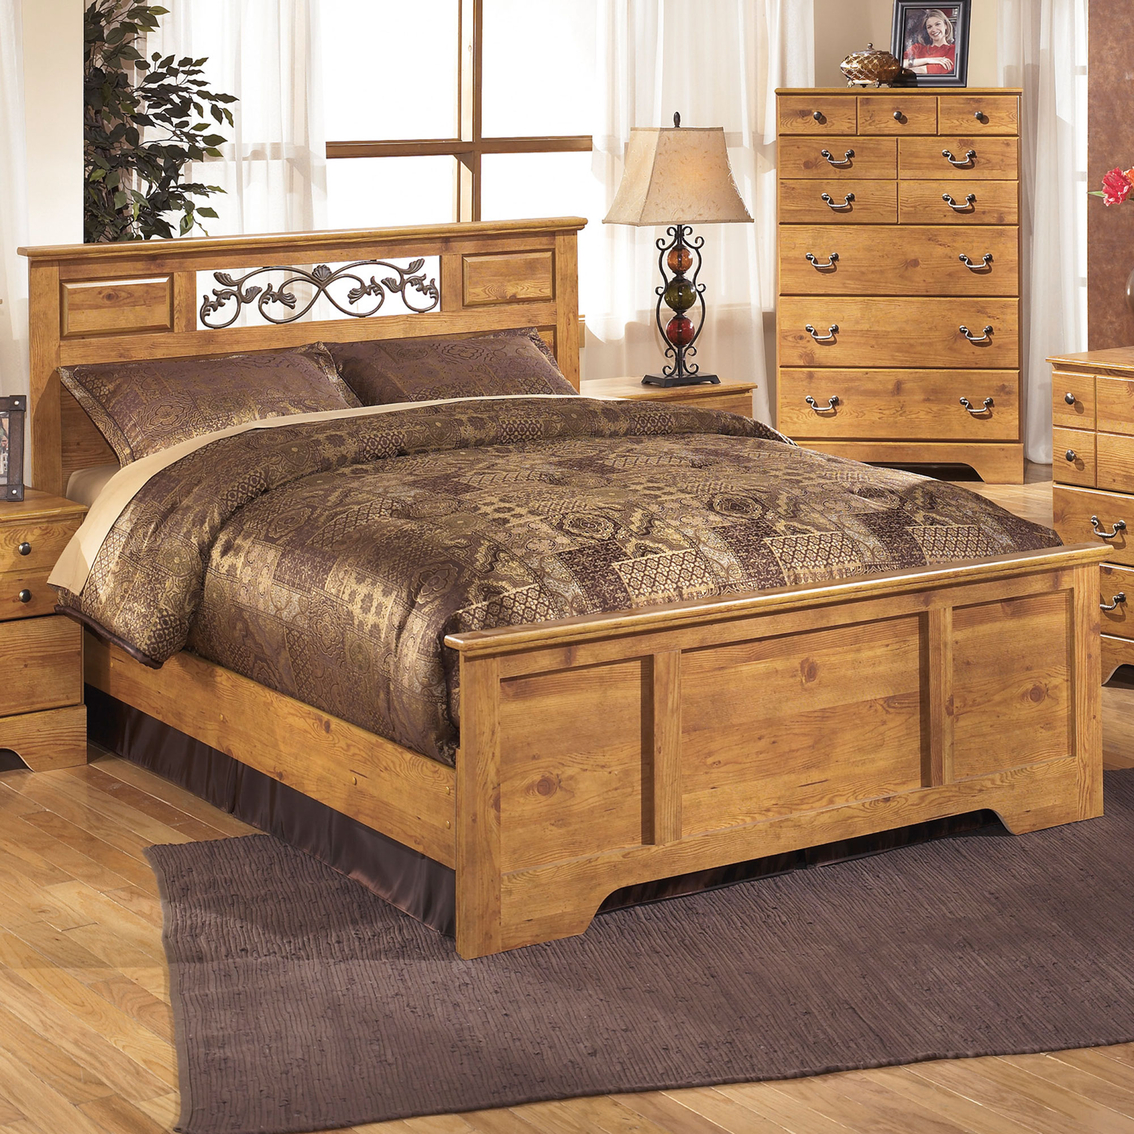 Signature Design By Ashley Bittersweet Queen Panel Bed